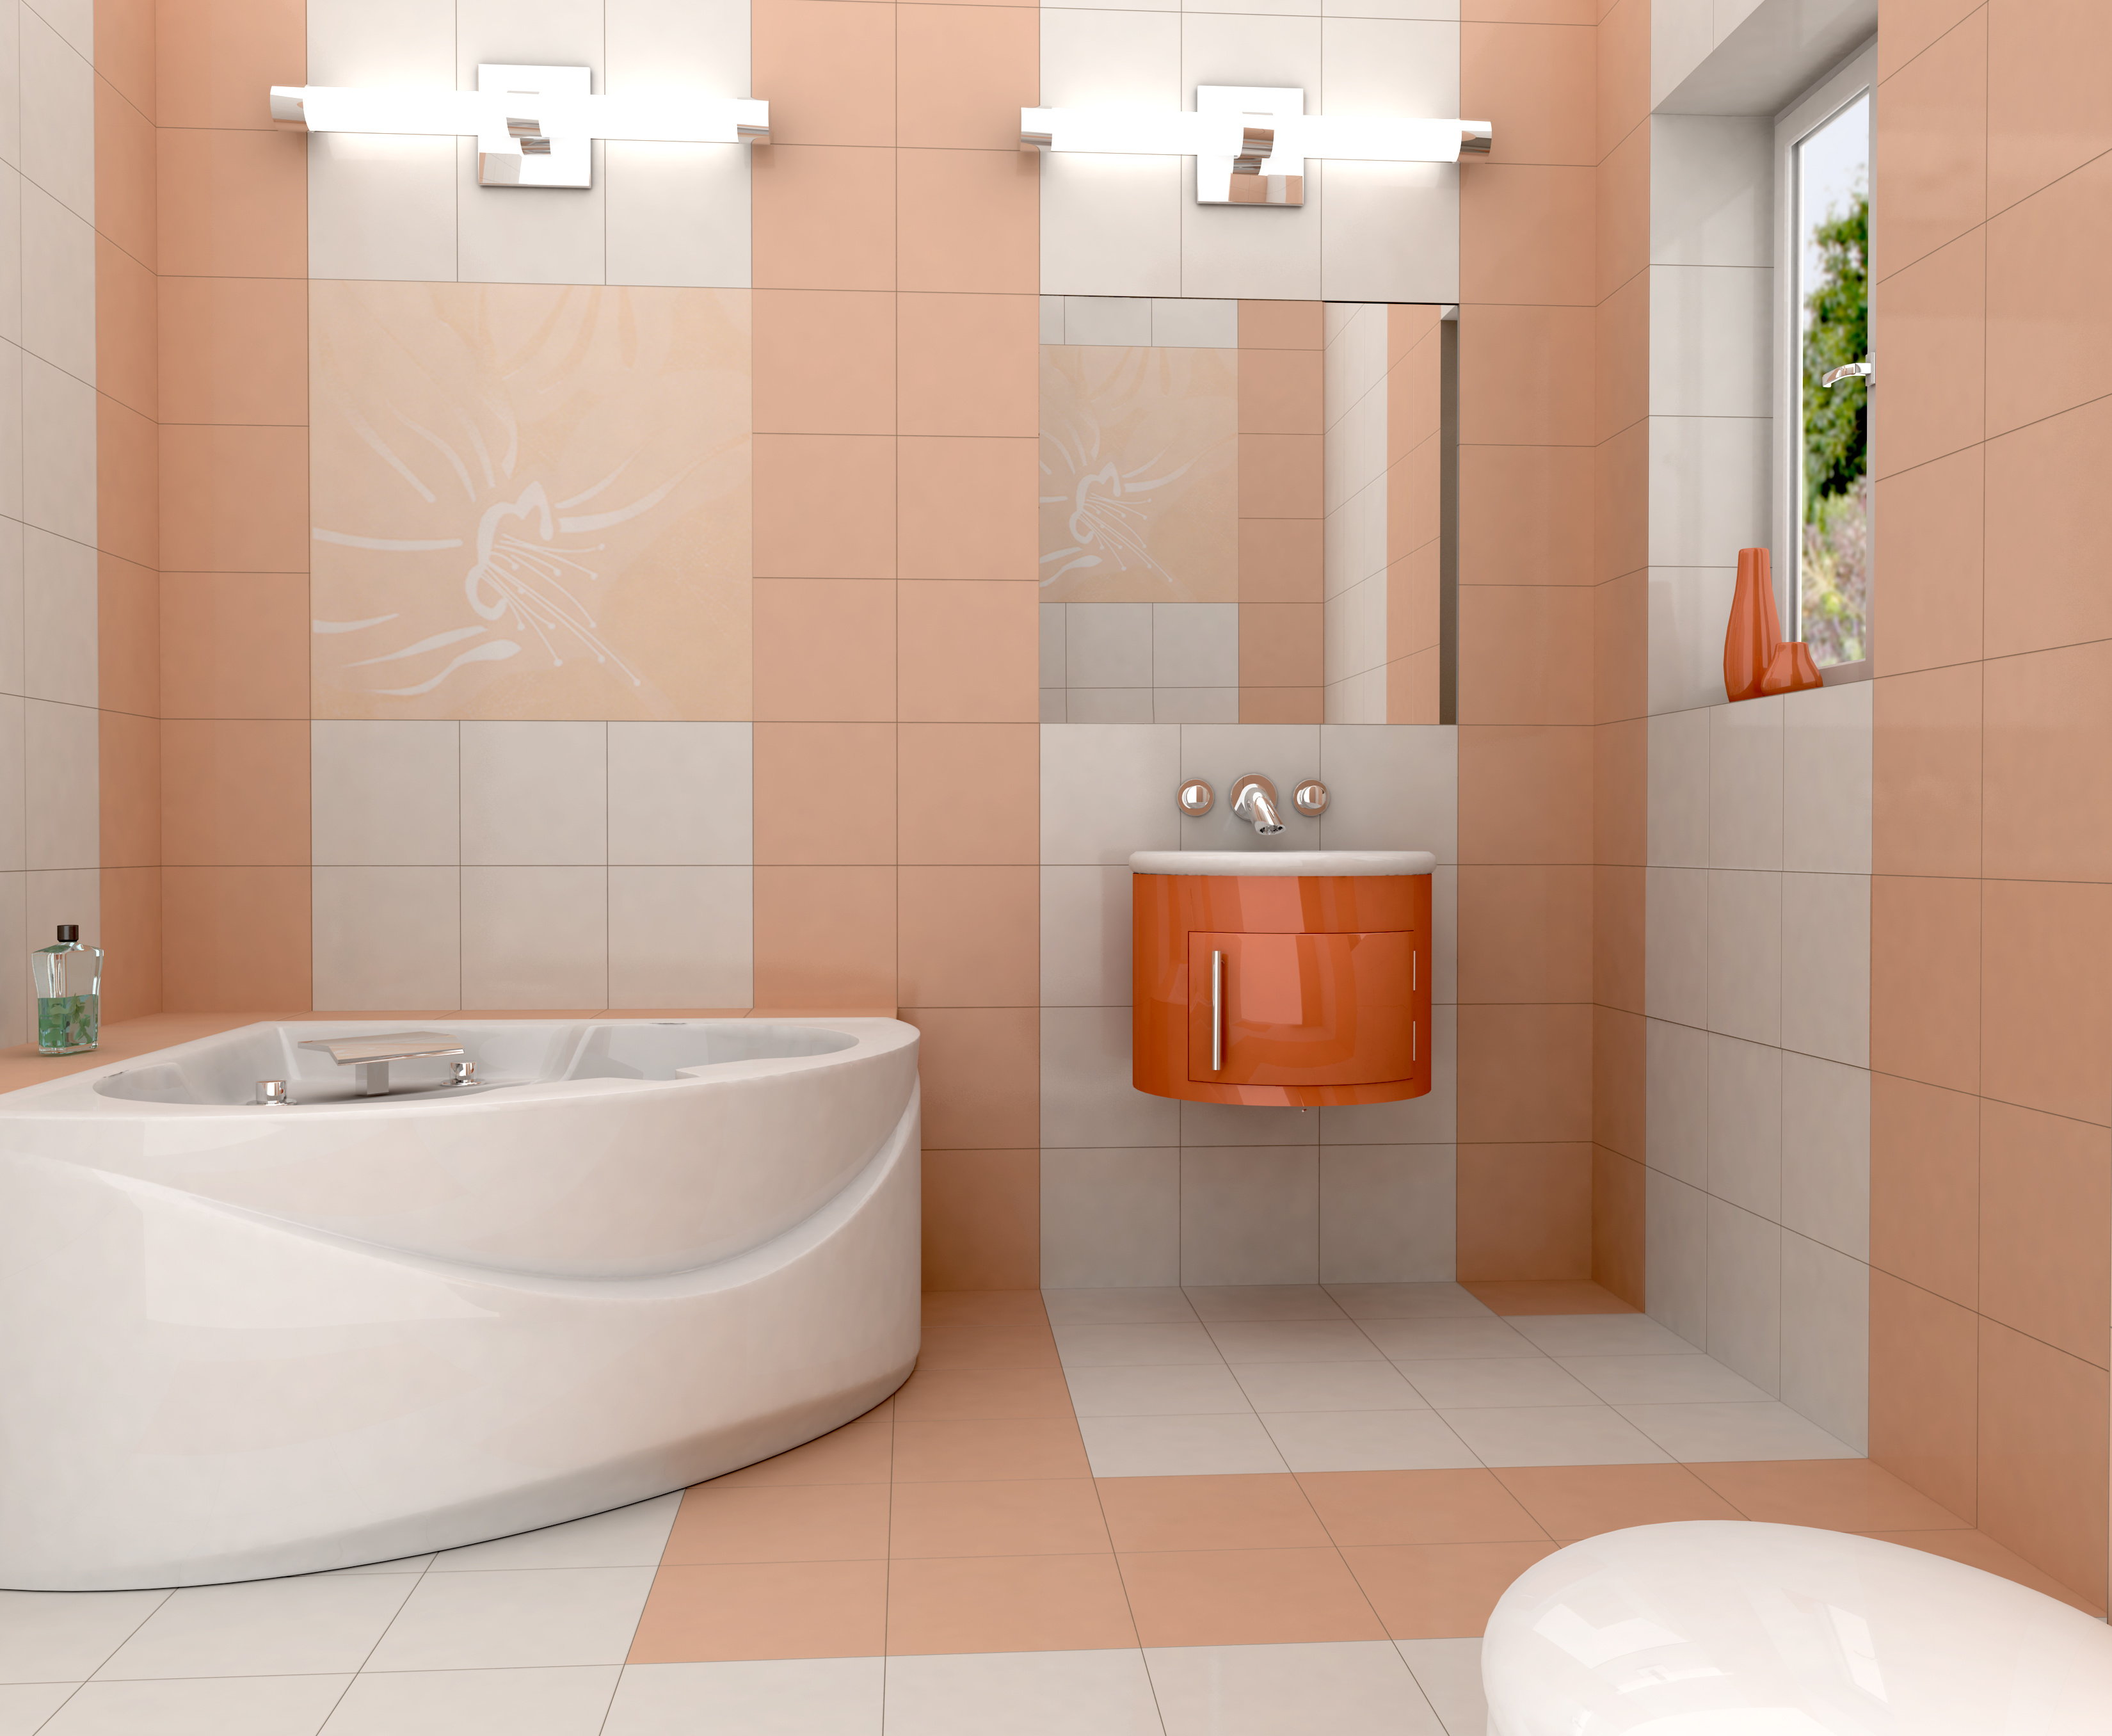 Small Or Large Tiles For Bathroom Floors